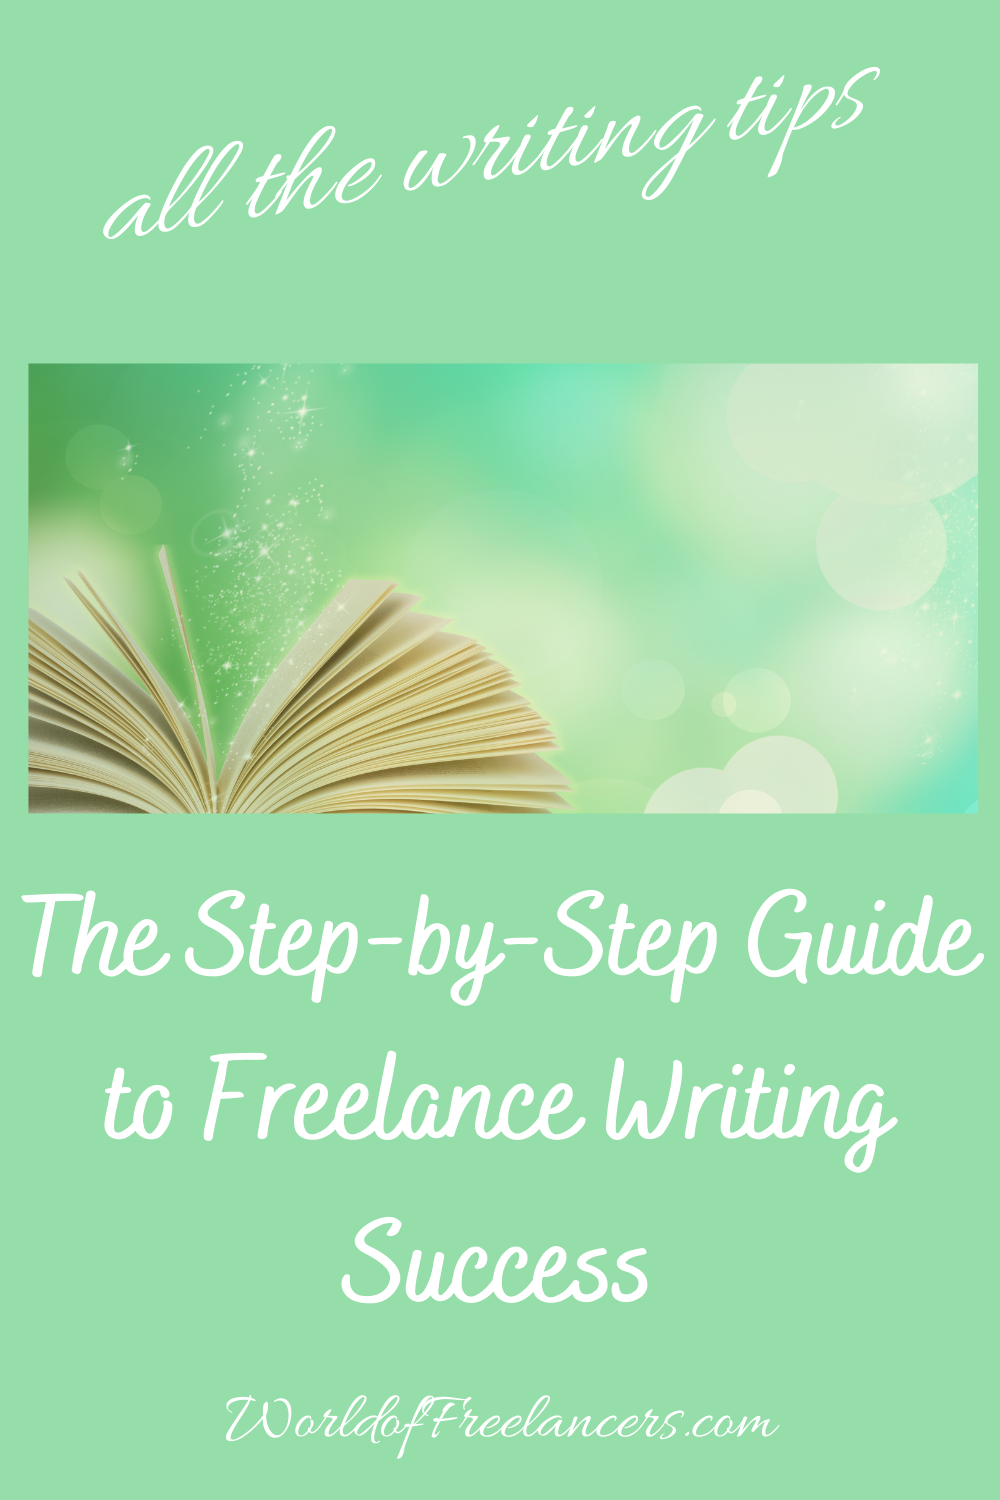 All the writing tips in The Step-by-Step Guide to Freelance Writing Success